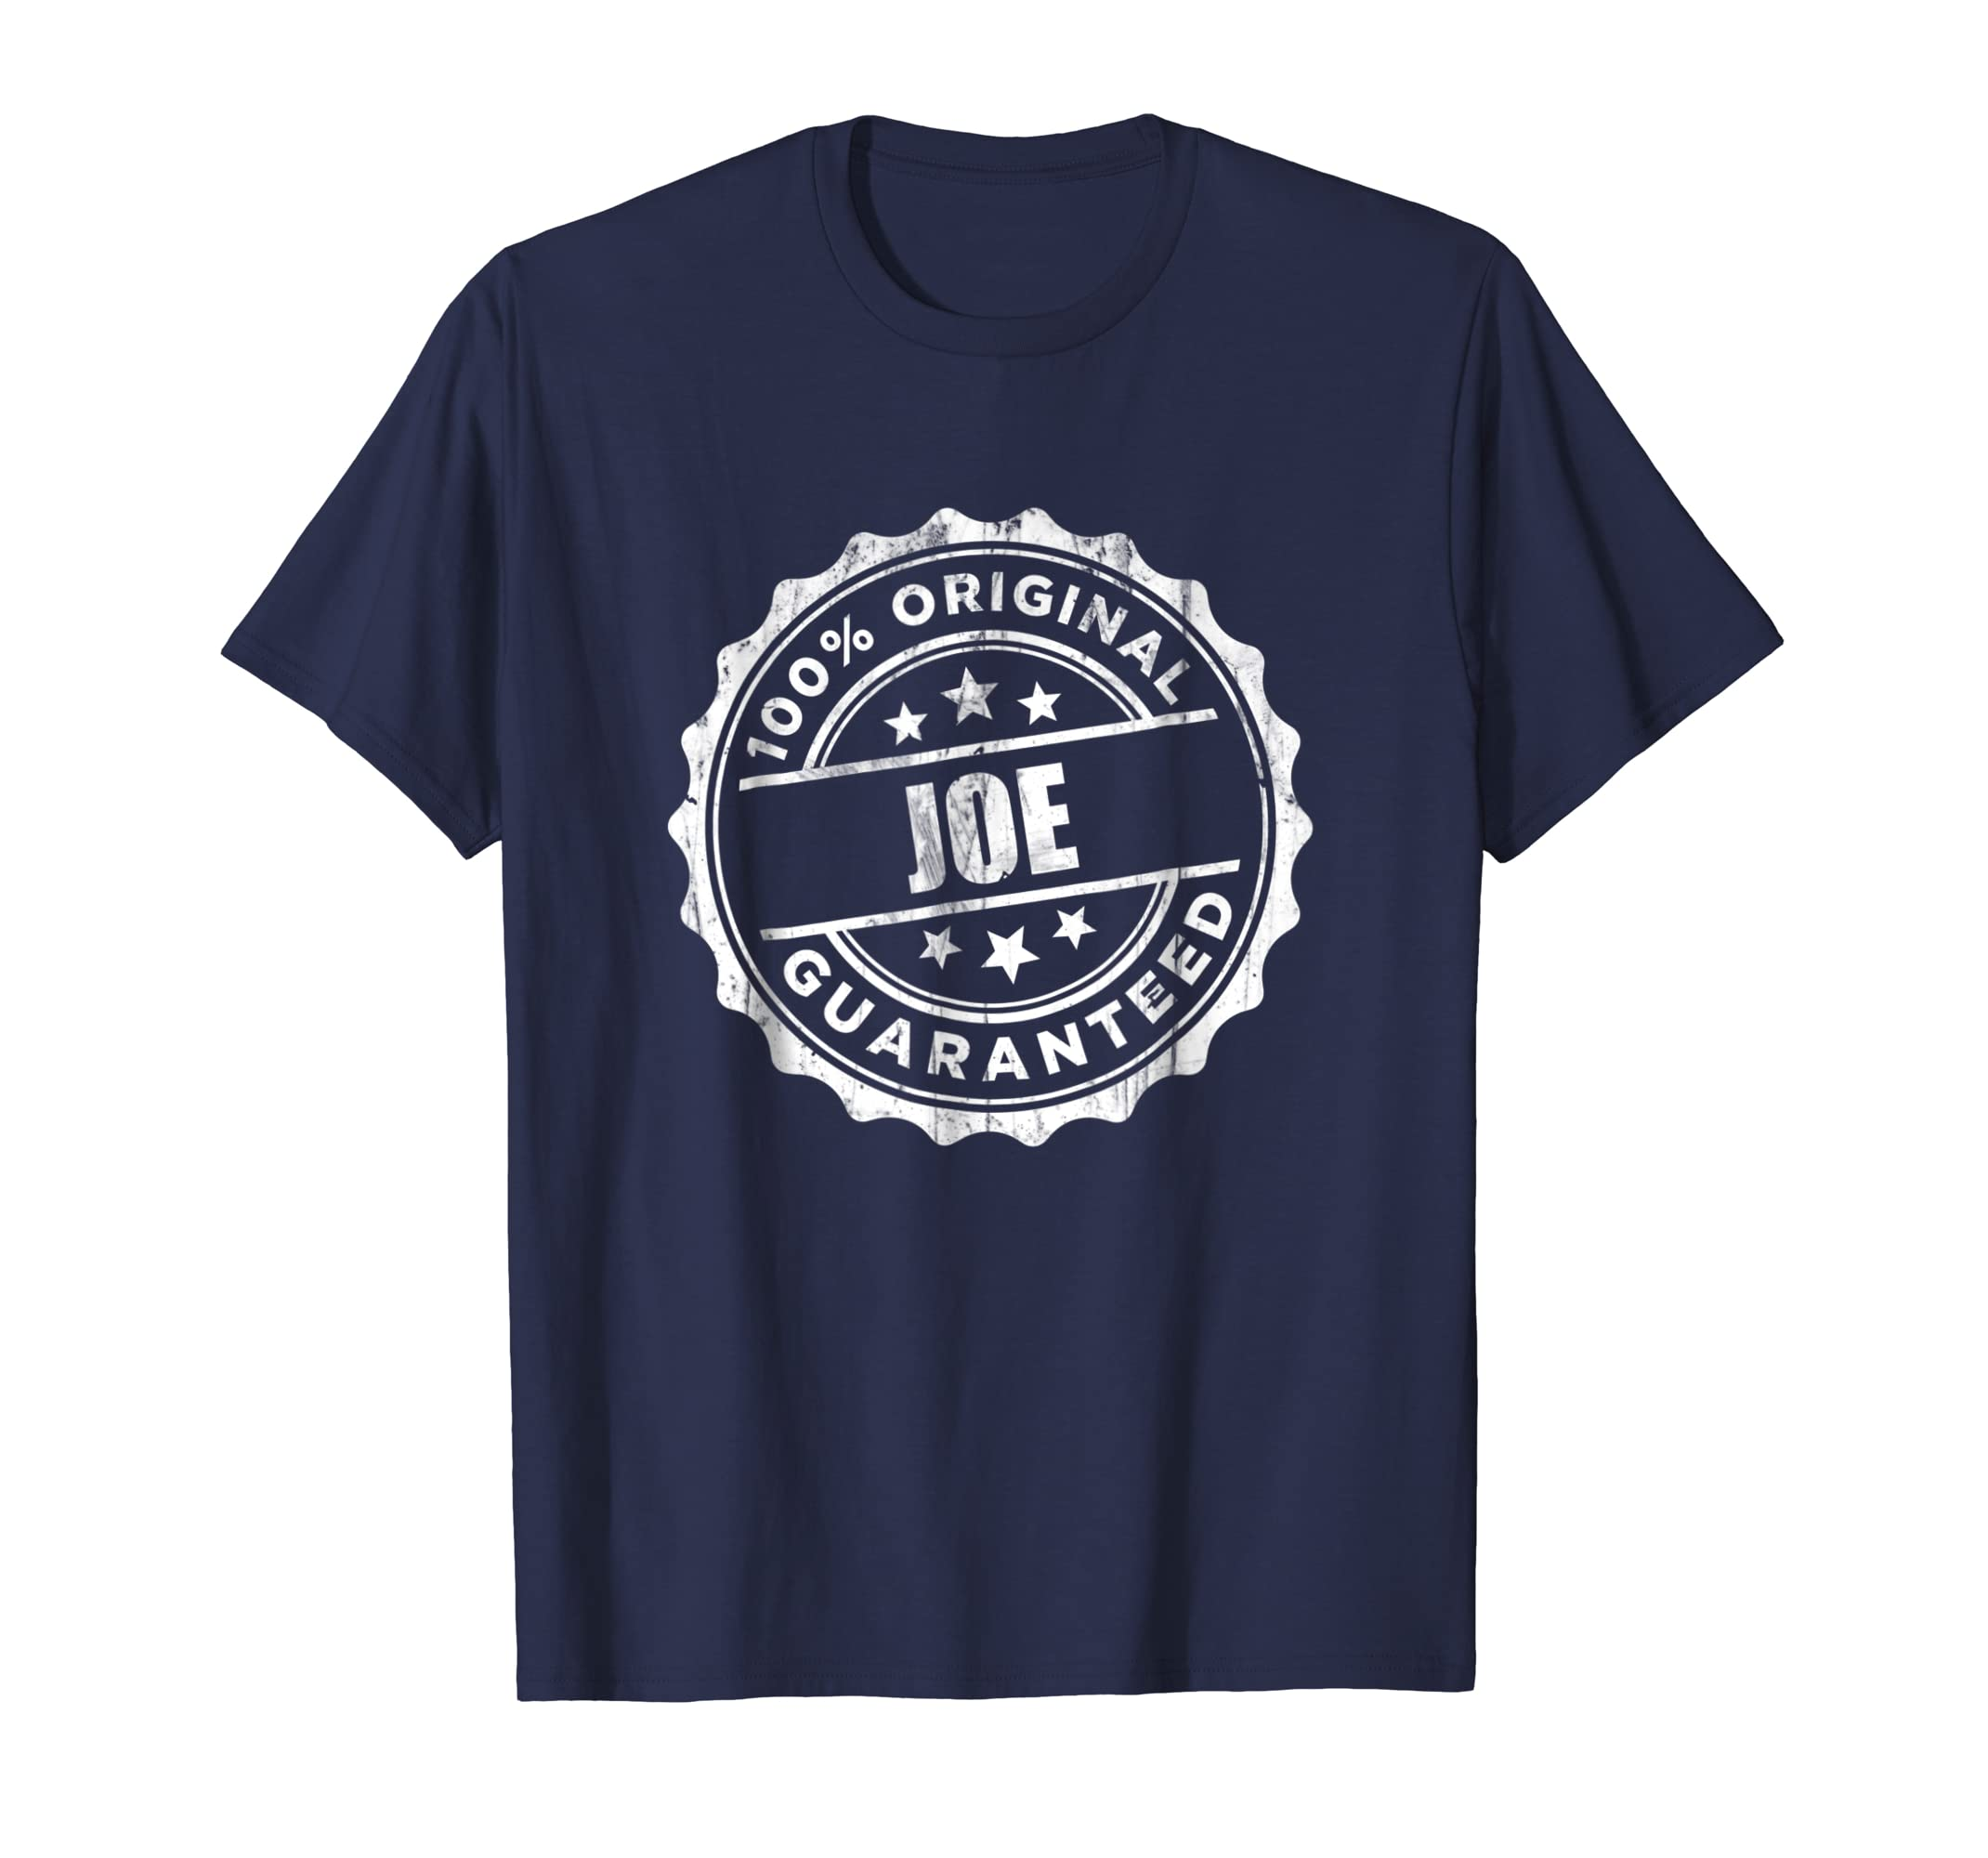 Joe T Shirt 100% Original Guaranteed-azvn